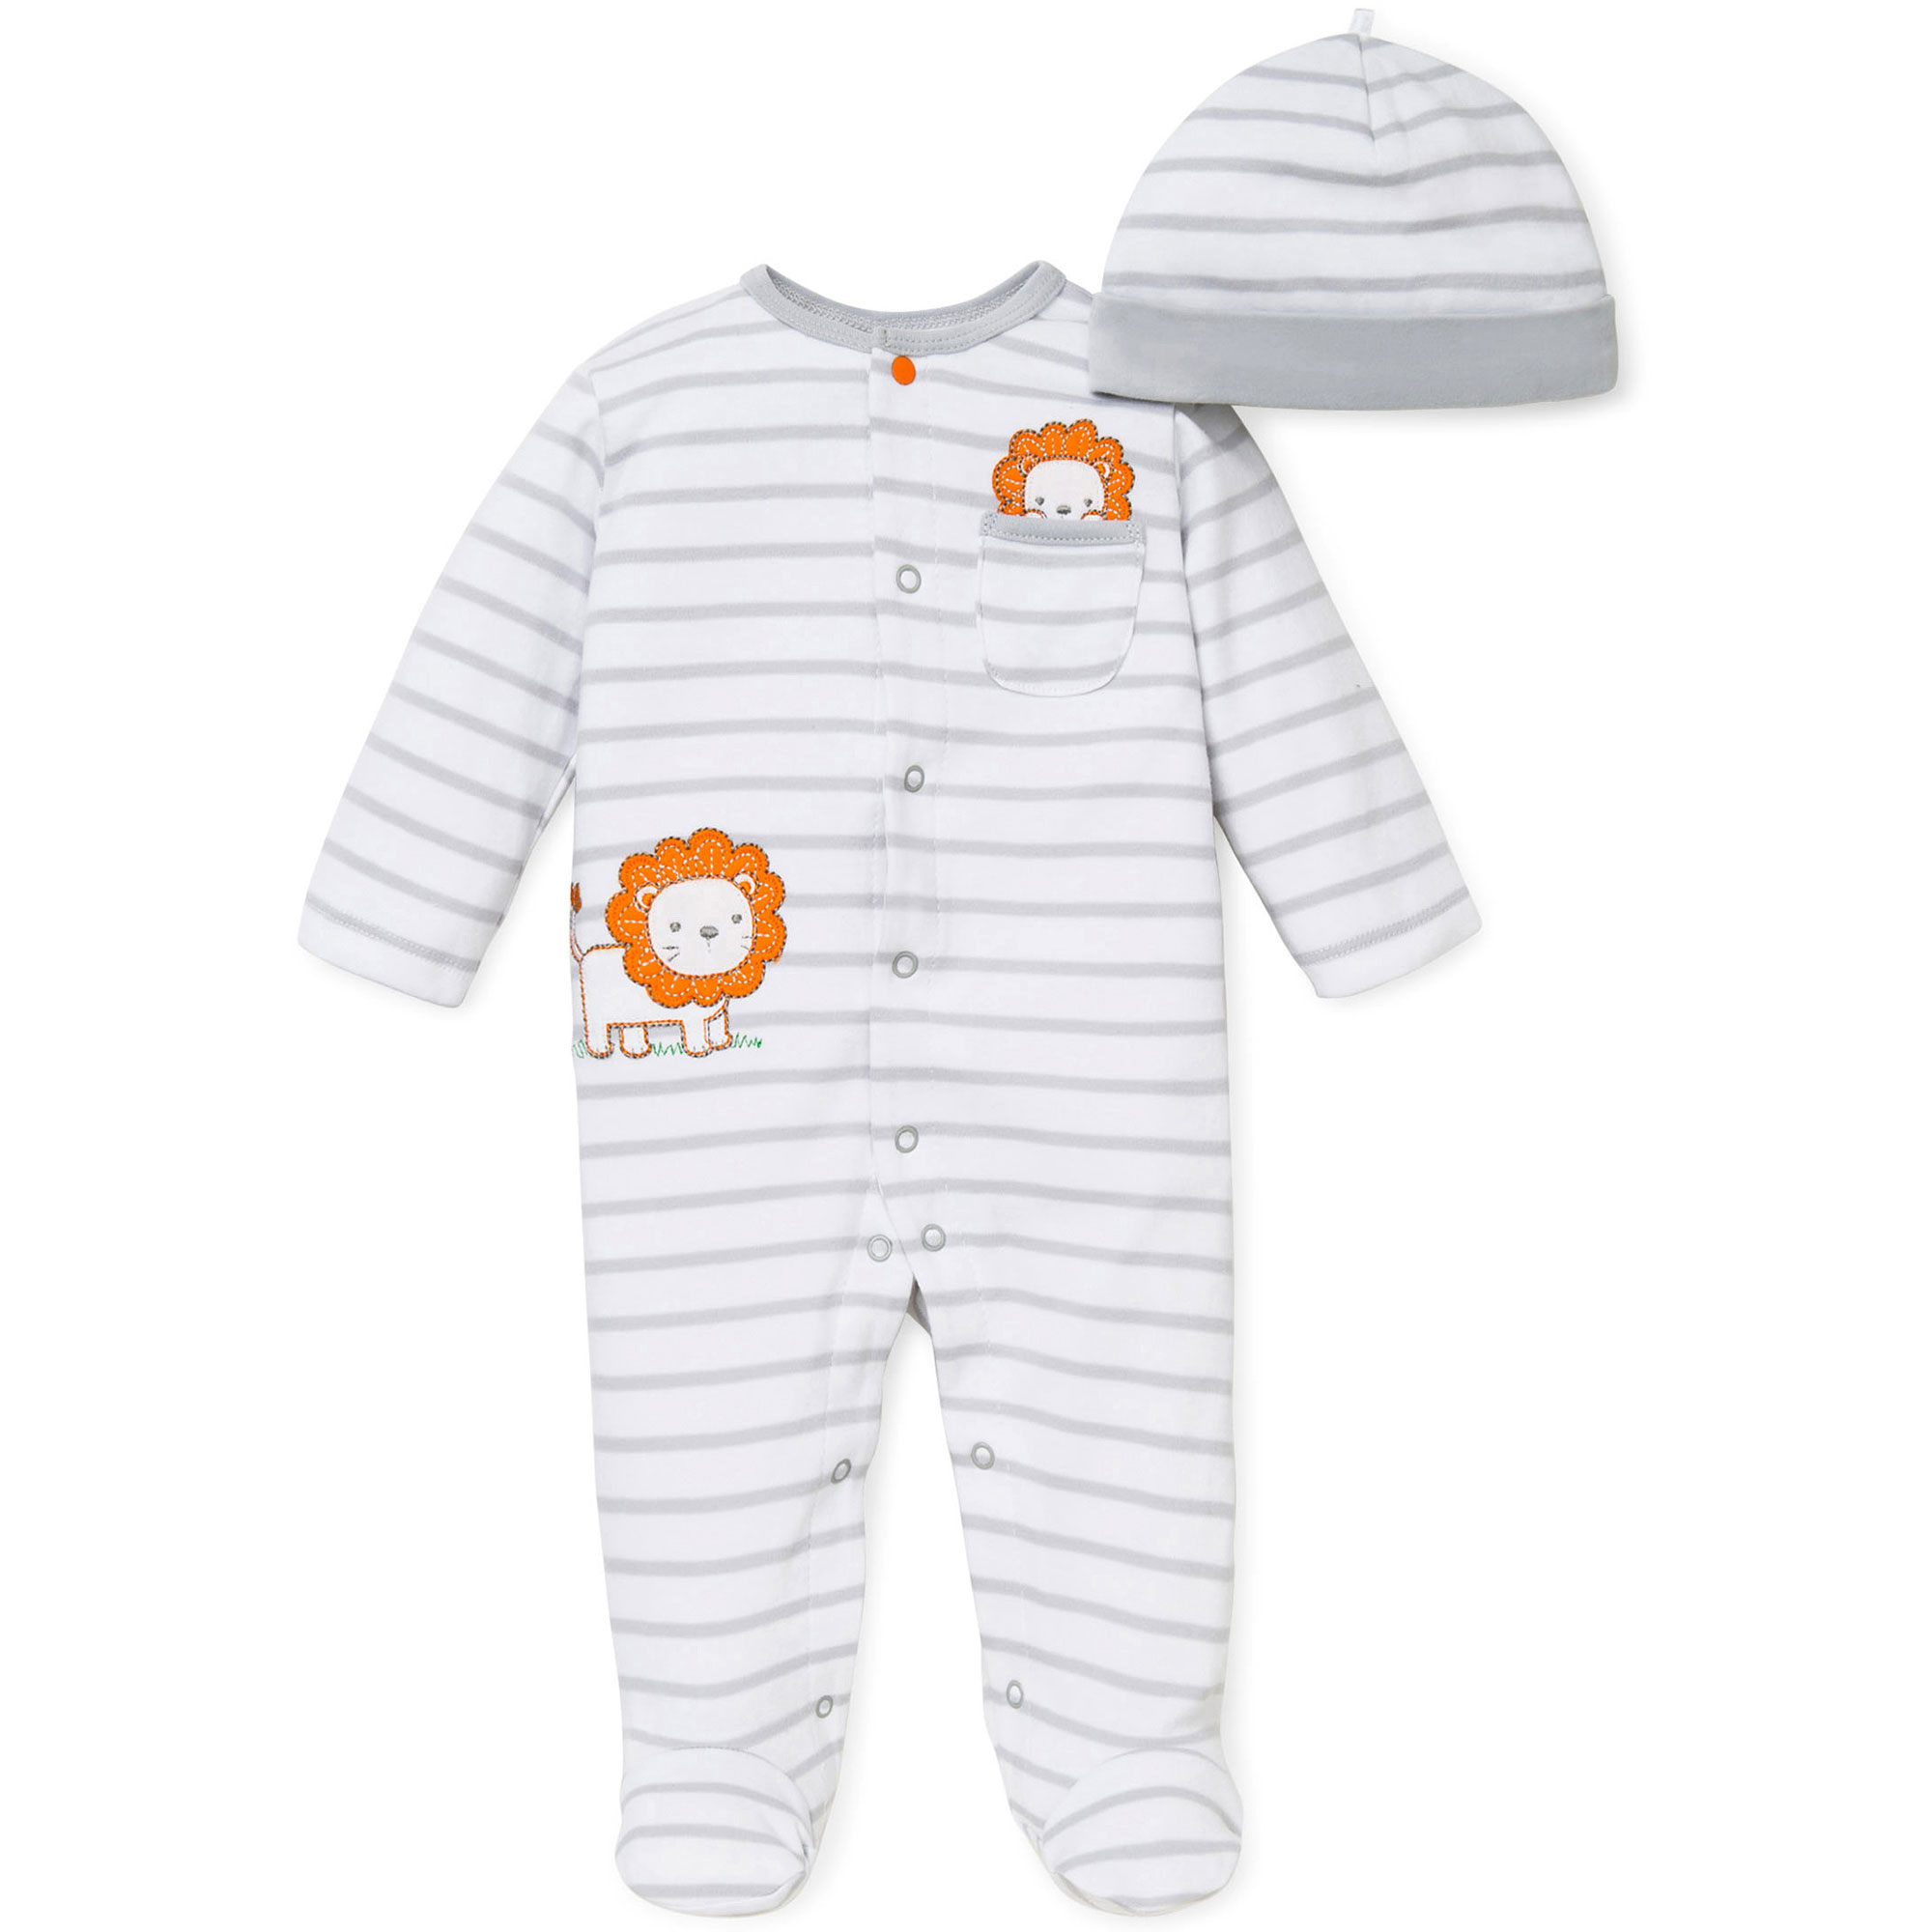 Baby boys sleep n play one piece romper coverall infant footed sleeper